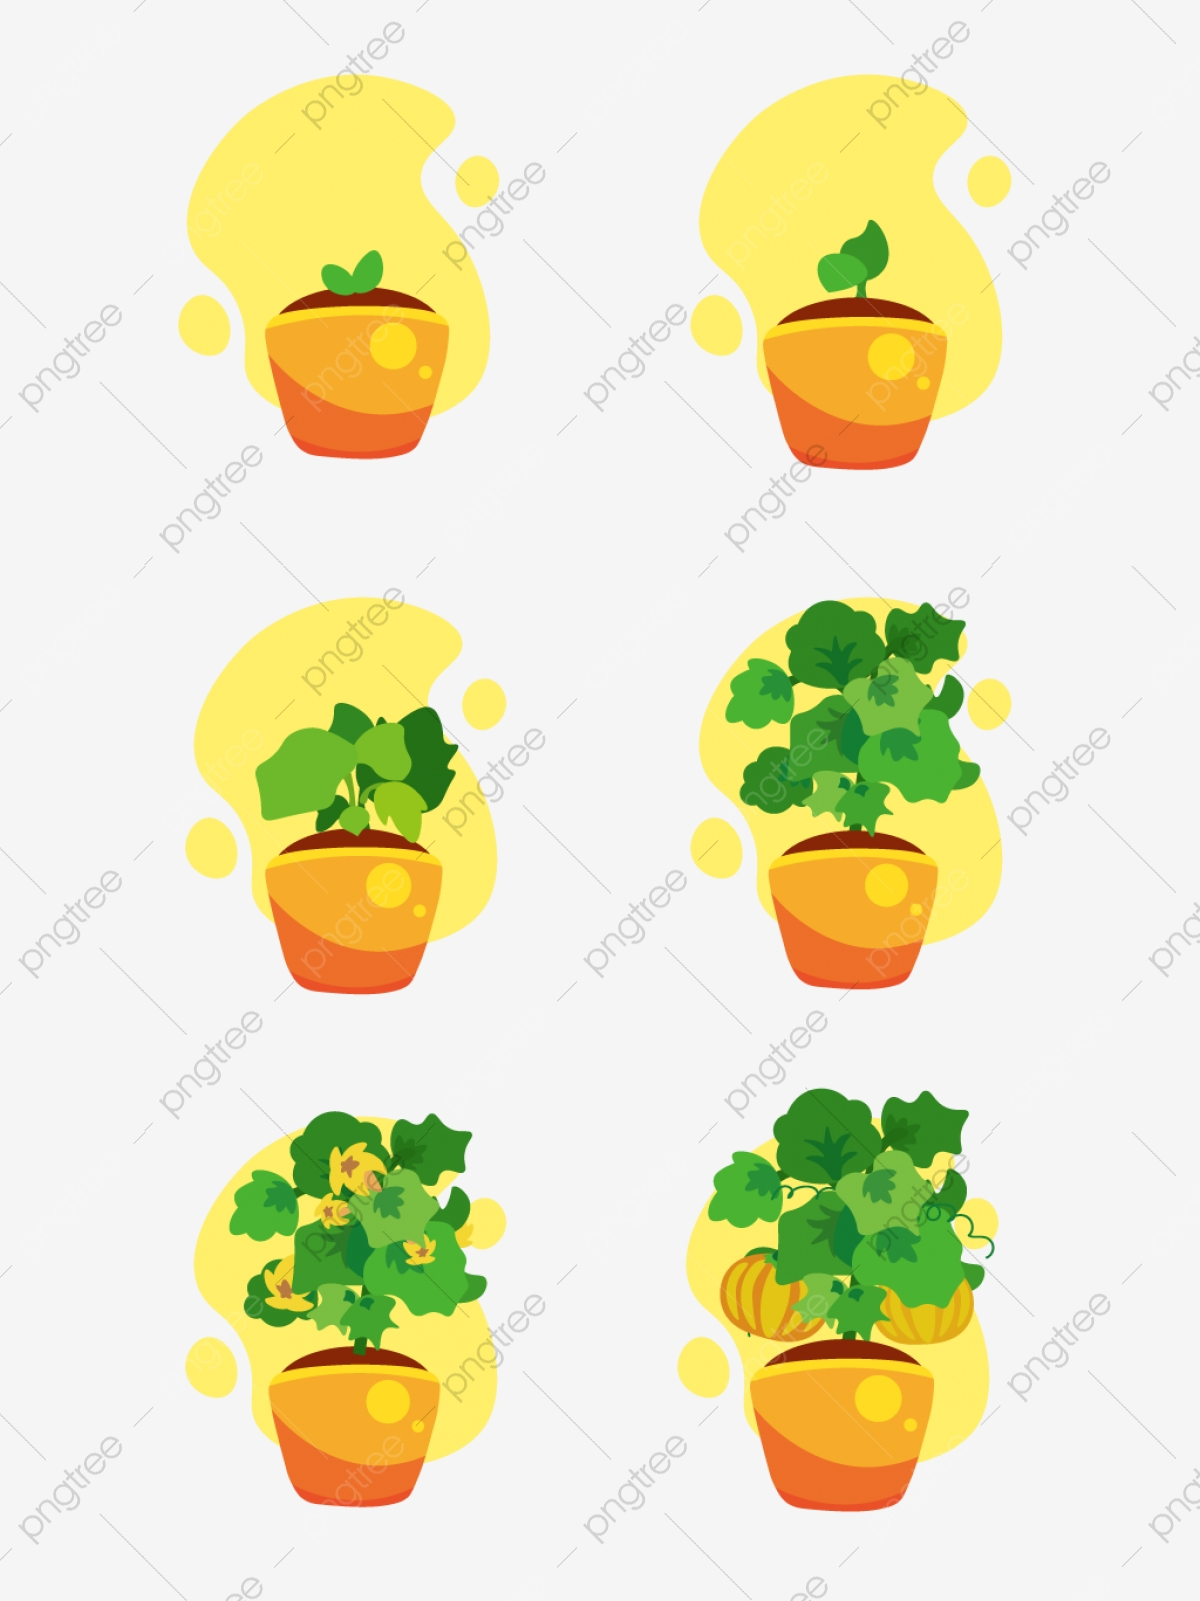 Cartoon Pumpkin Plant Growth Process Decorative Pattern Cartoon Plant Process Of Growth Png And Vector With Transparent Background For Free Download Download cute cartoon tree collection vector art. https pngtree com freepng cartoon pumpkin plant growth process decorative pattern 4029378 html